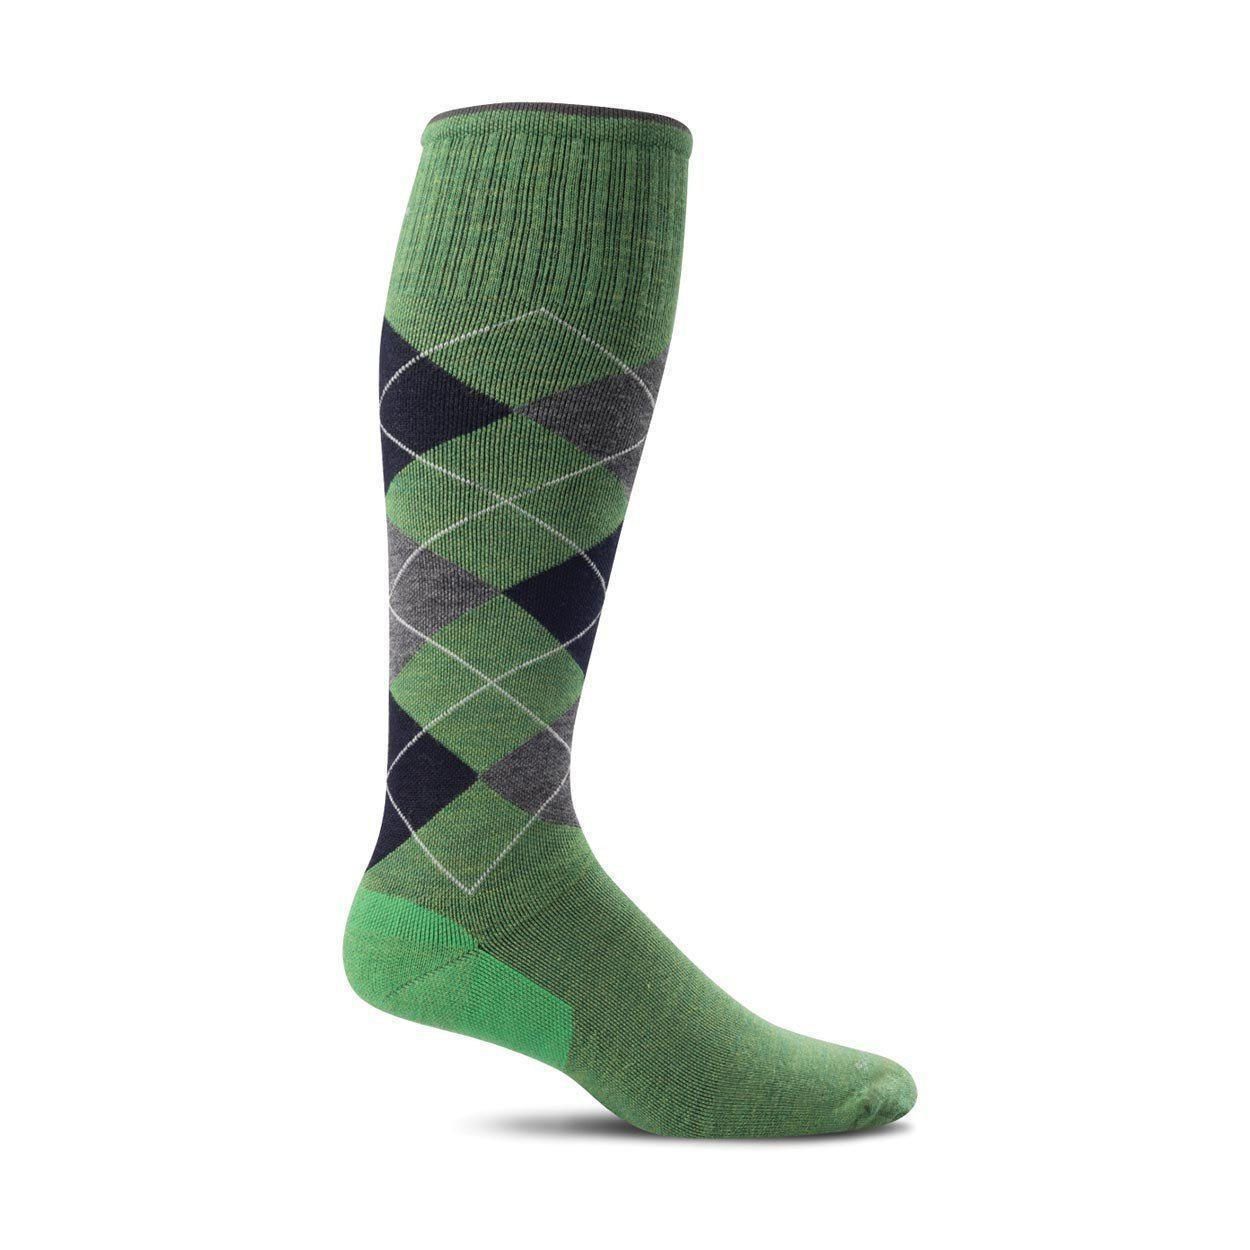 Sockwell - Argyle Moderate Graduated Compression (15-20 mmHg) Socks | Men's - Knock Your Socks Off